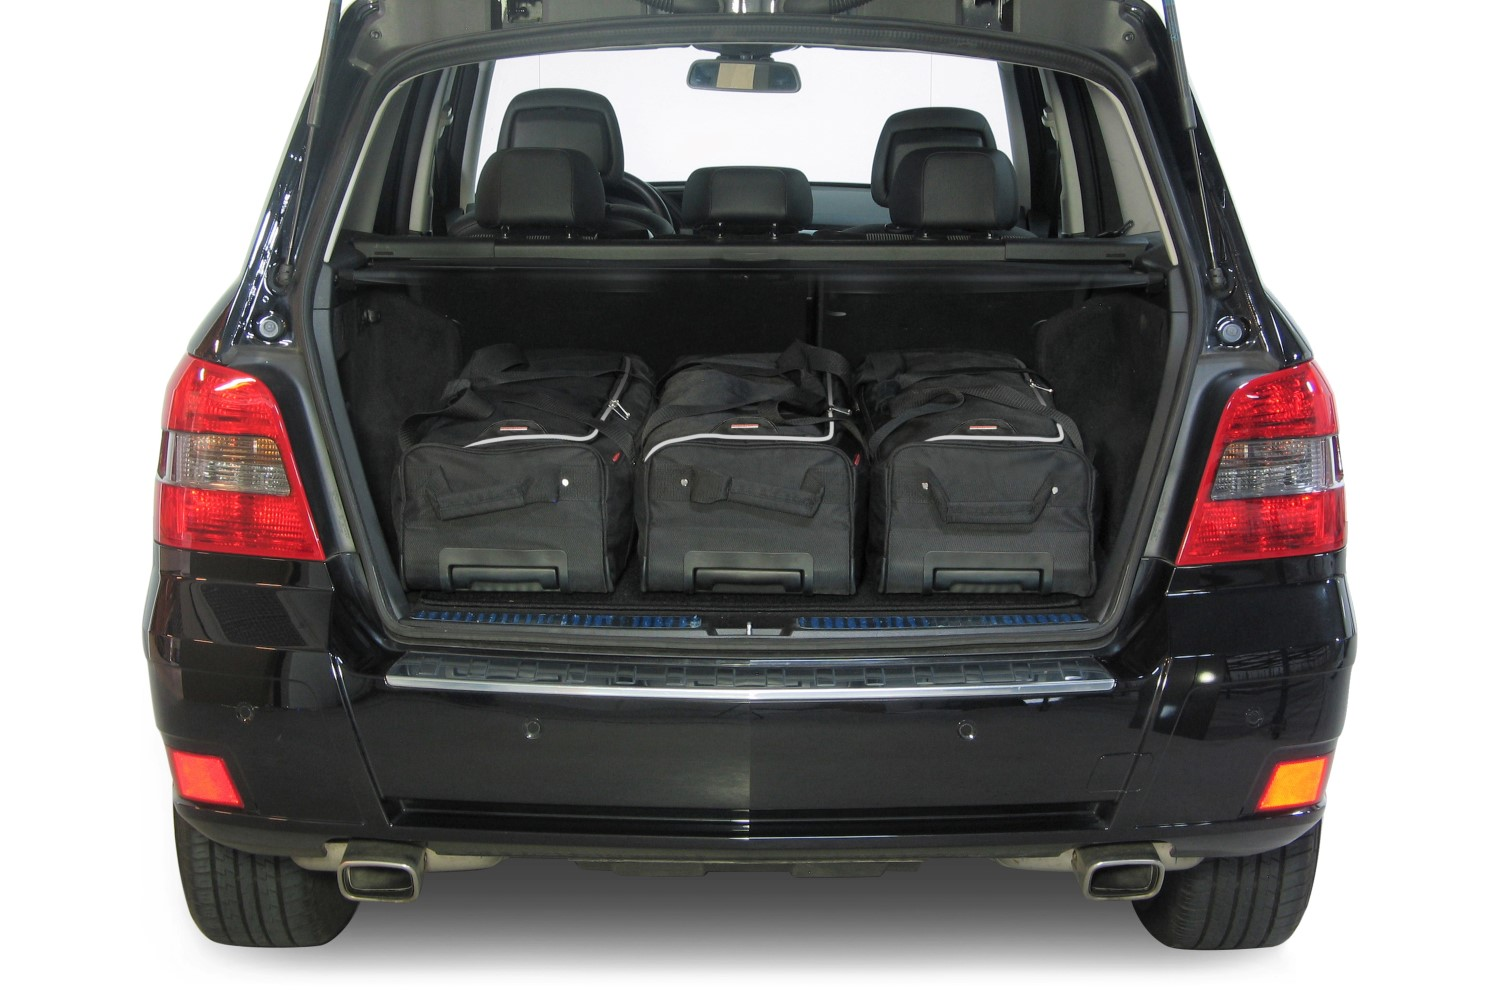 glk mercedes benz glk x204 2008 2015 car bags travel bags. Black Bedroom Furniture Sets. Home Design Ideas